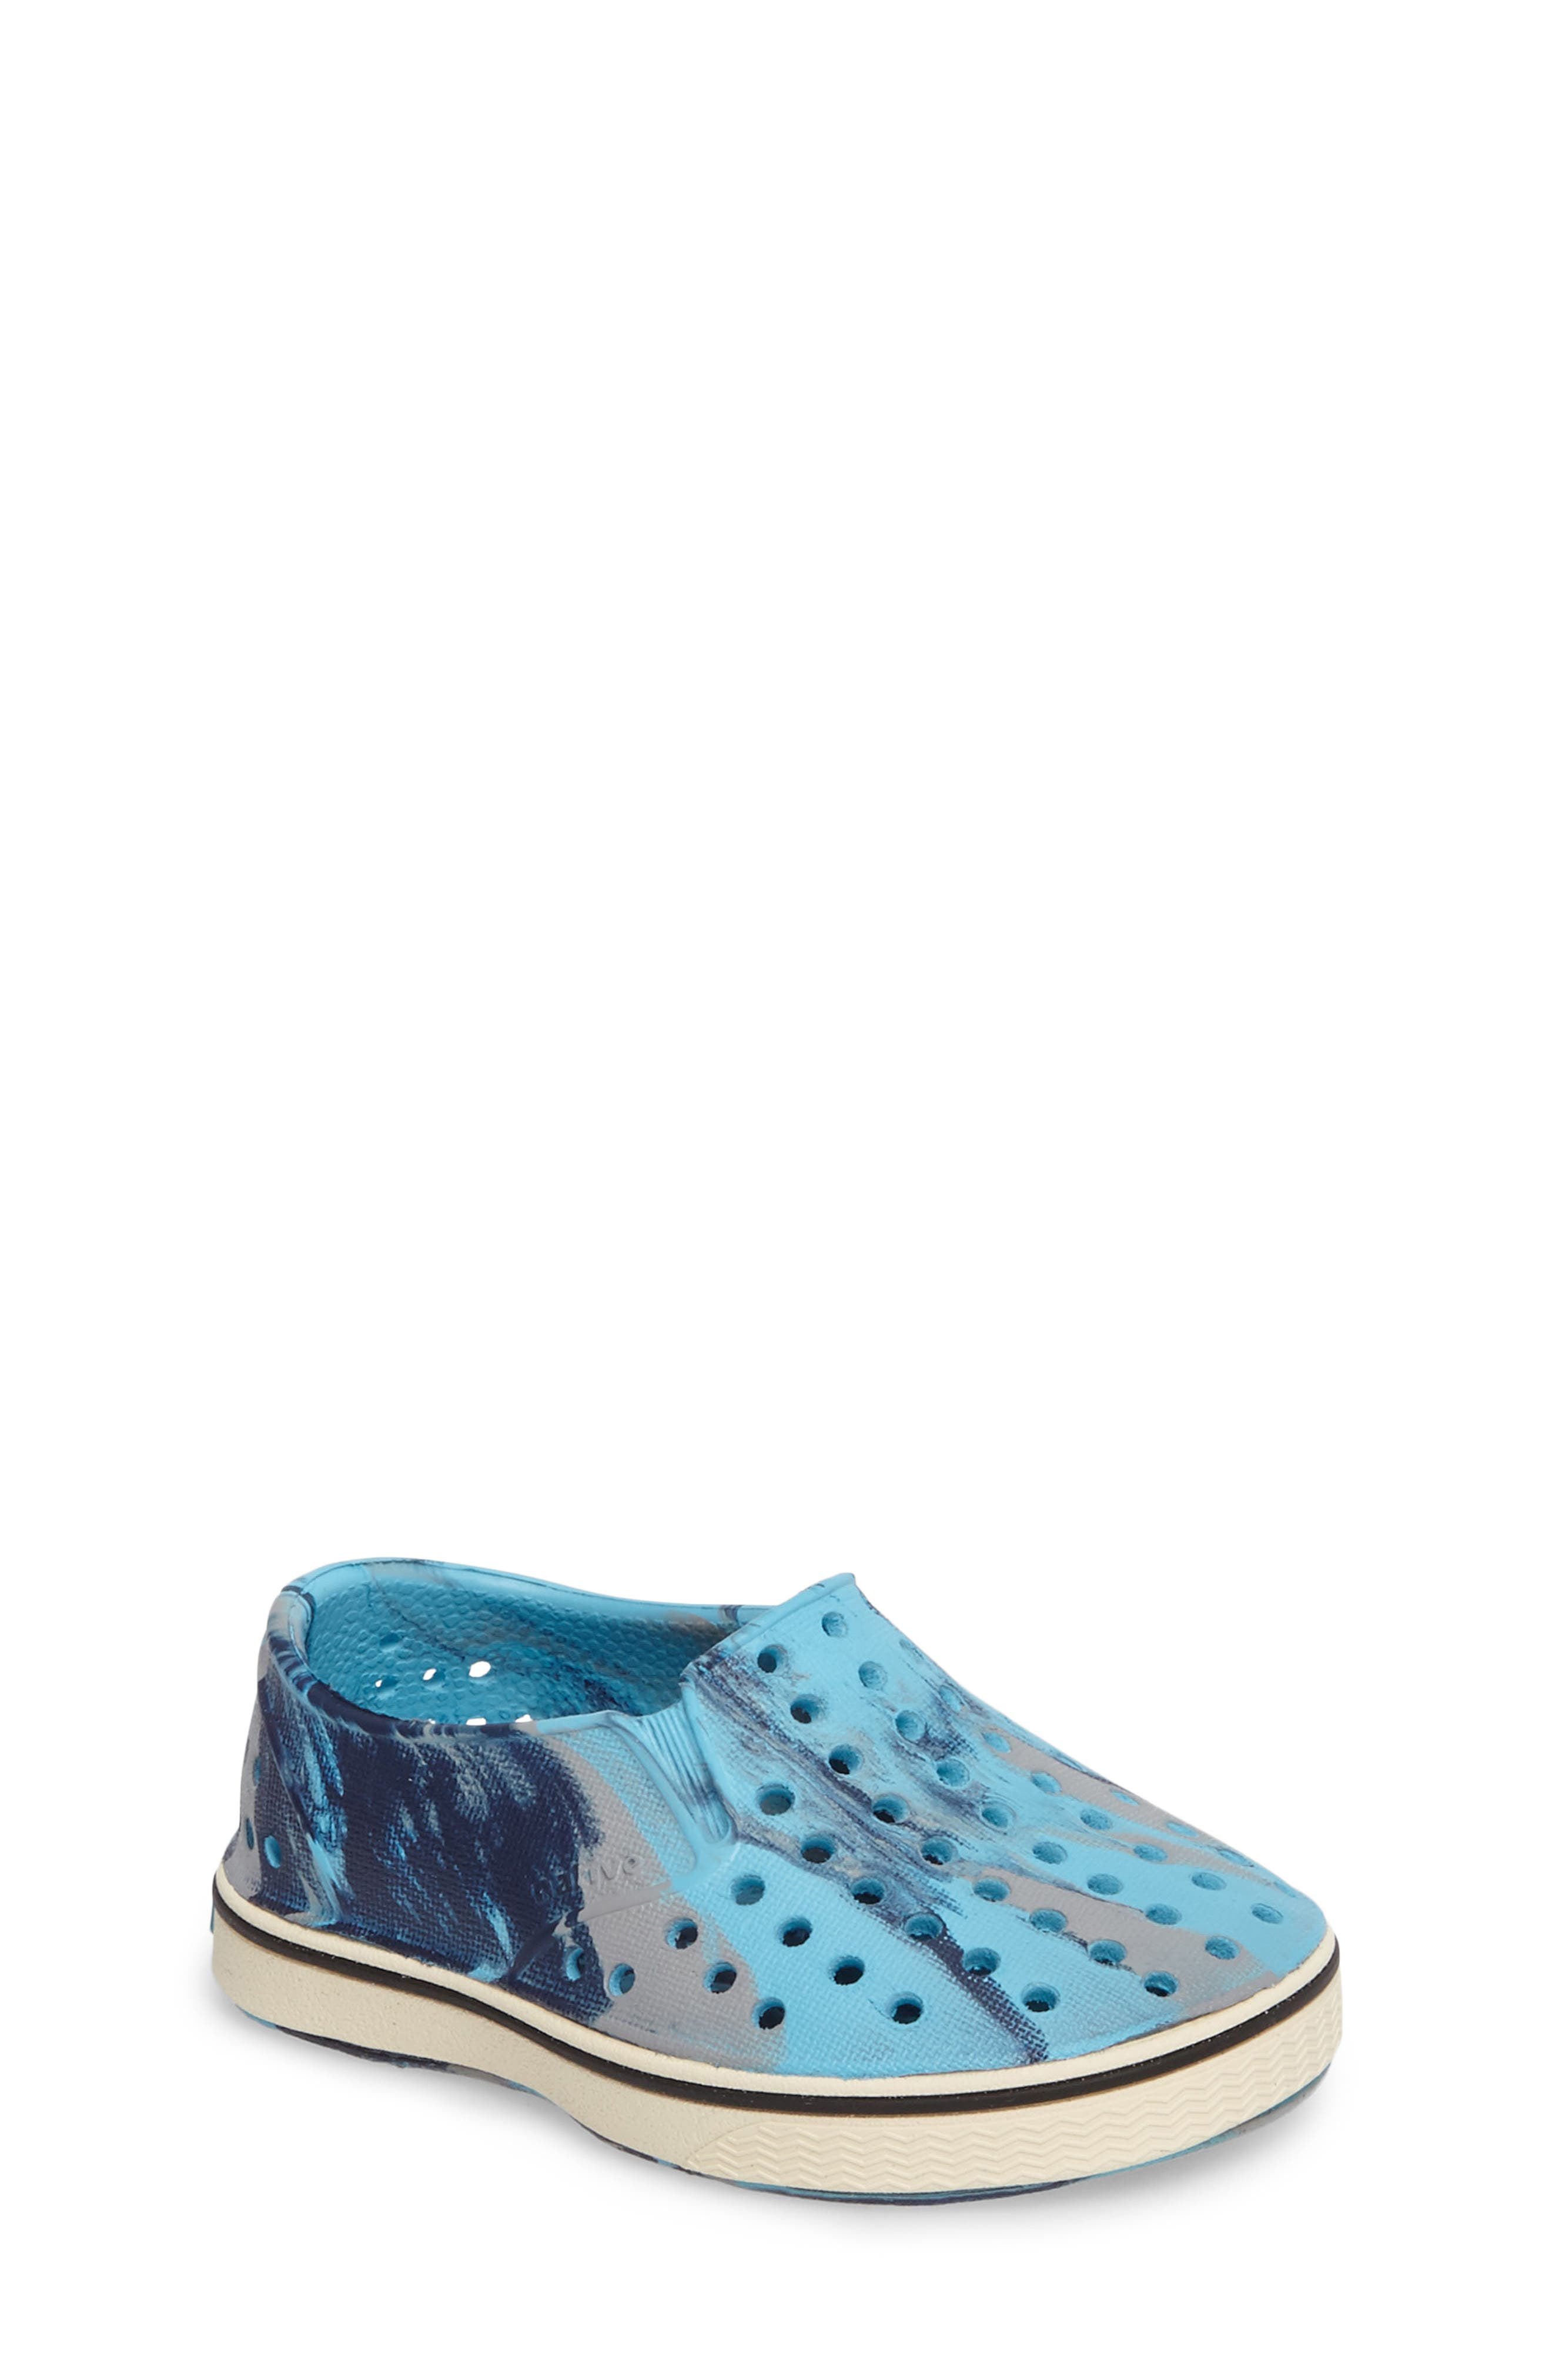 Native Shoes Miles Marbled Slip-On Sneaker (Baby, Walker, Toddler, Little Kid & Big Kid)